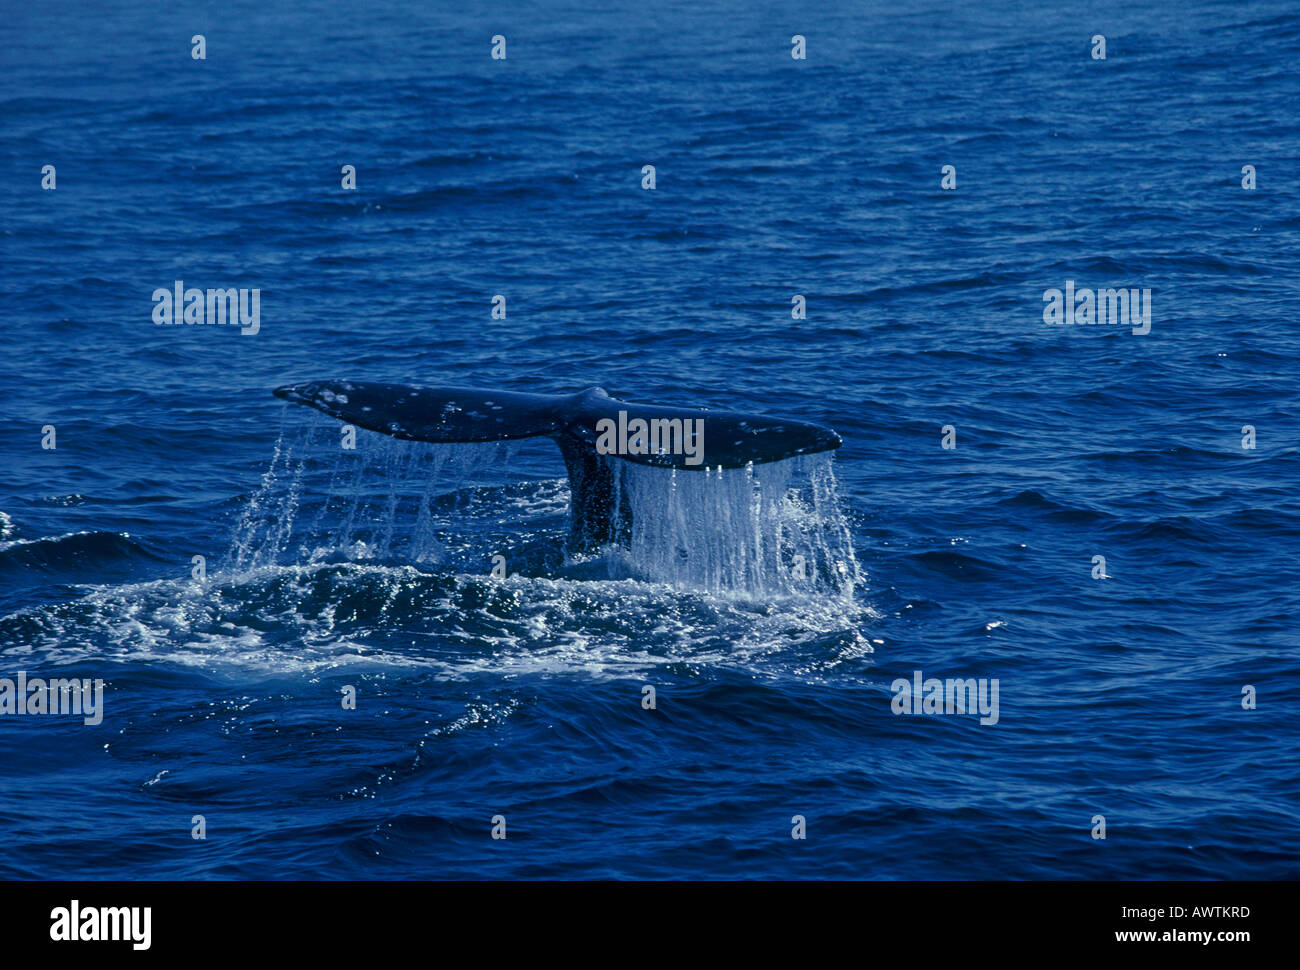 whale, whales, whale watching, Pacific coast, Pacific Ocean, Monterey, Monterey Bay, California, United States, North America - Stock Image